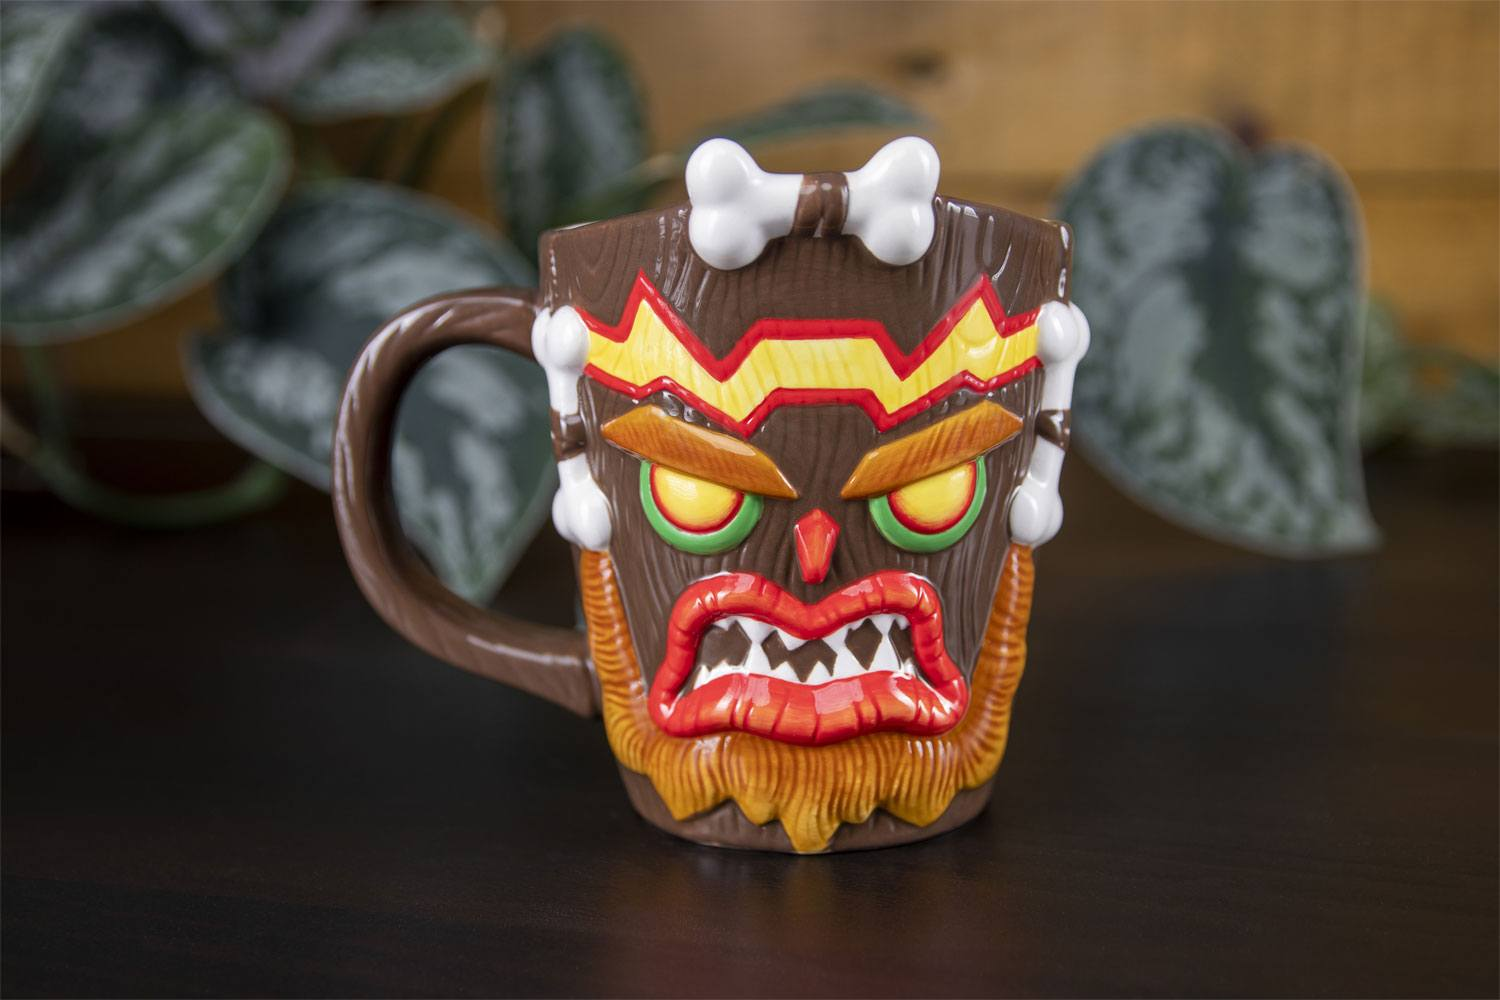 Crash Bandicoot Mug Shaped Uka Uka 13 cm